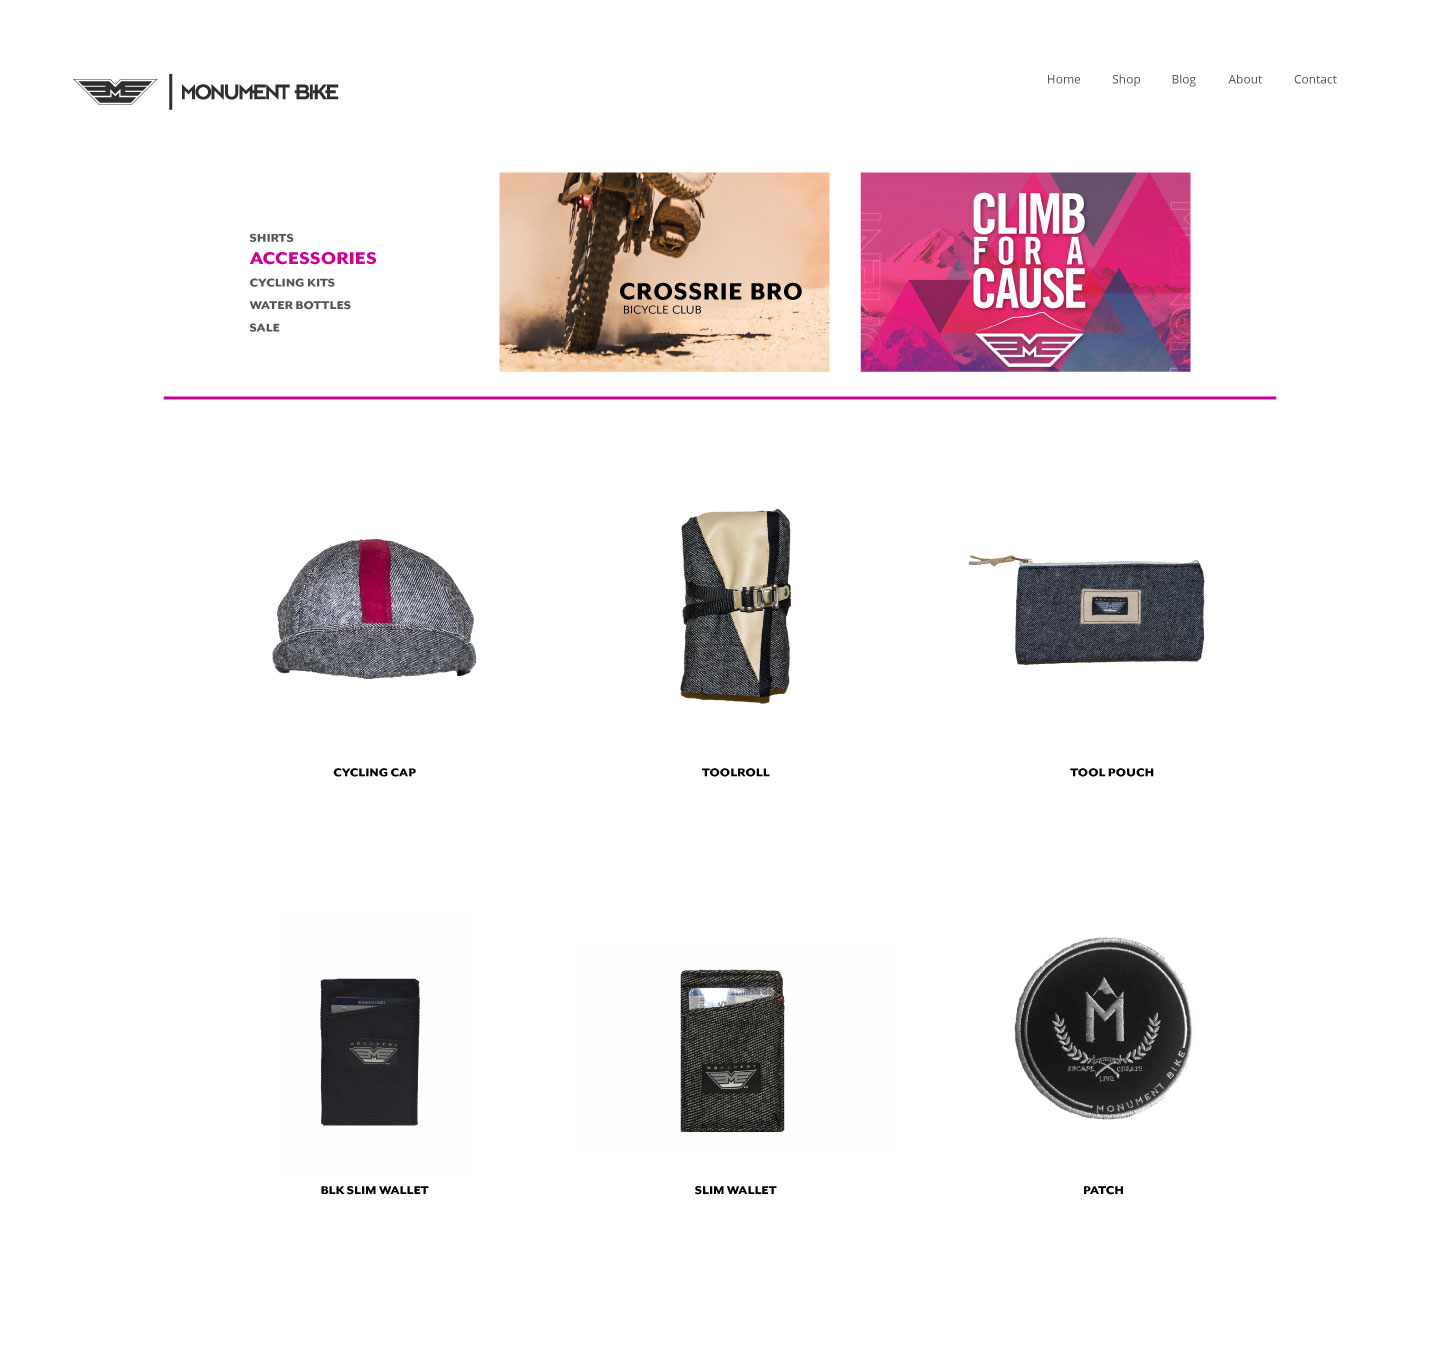 Monument-WEB_WIRE-layout2.jpg